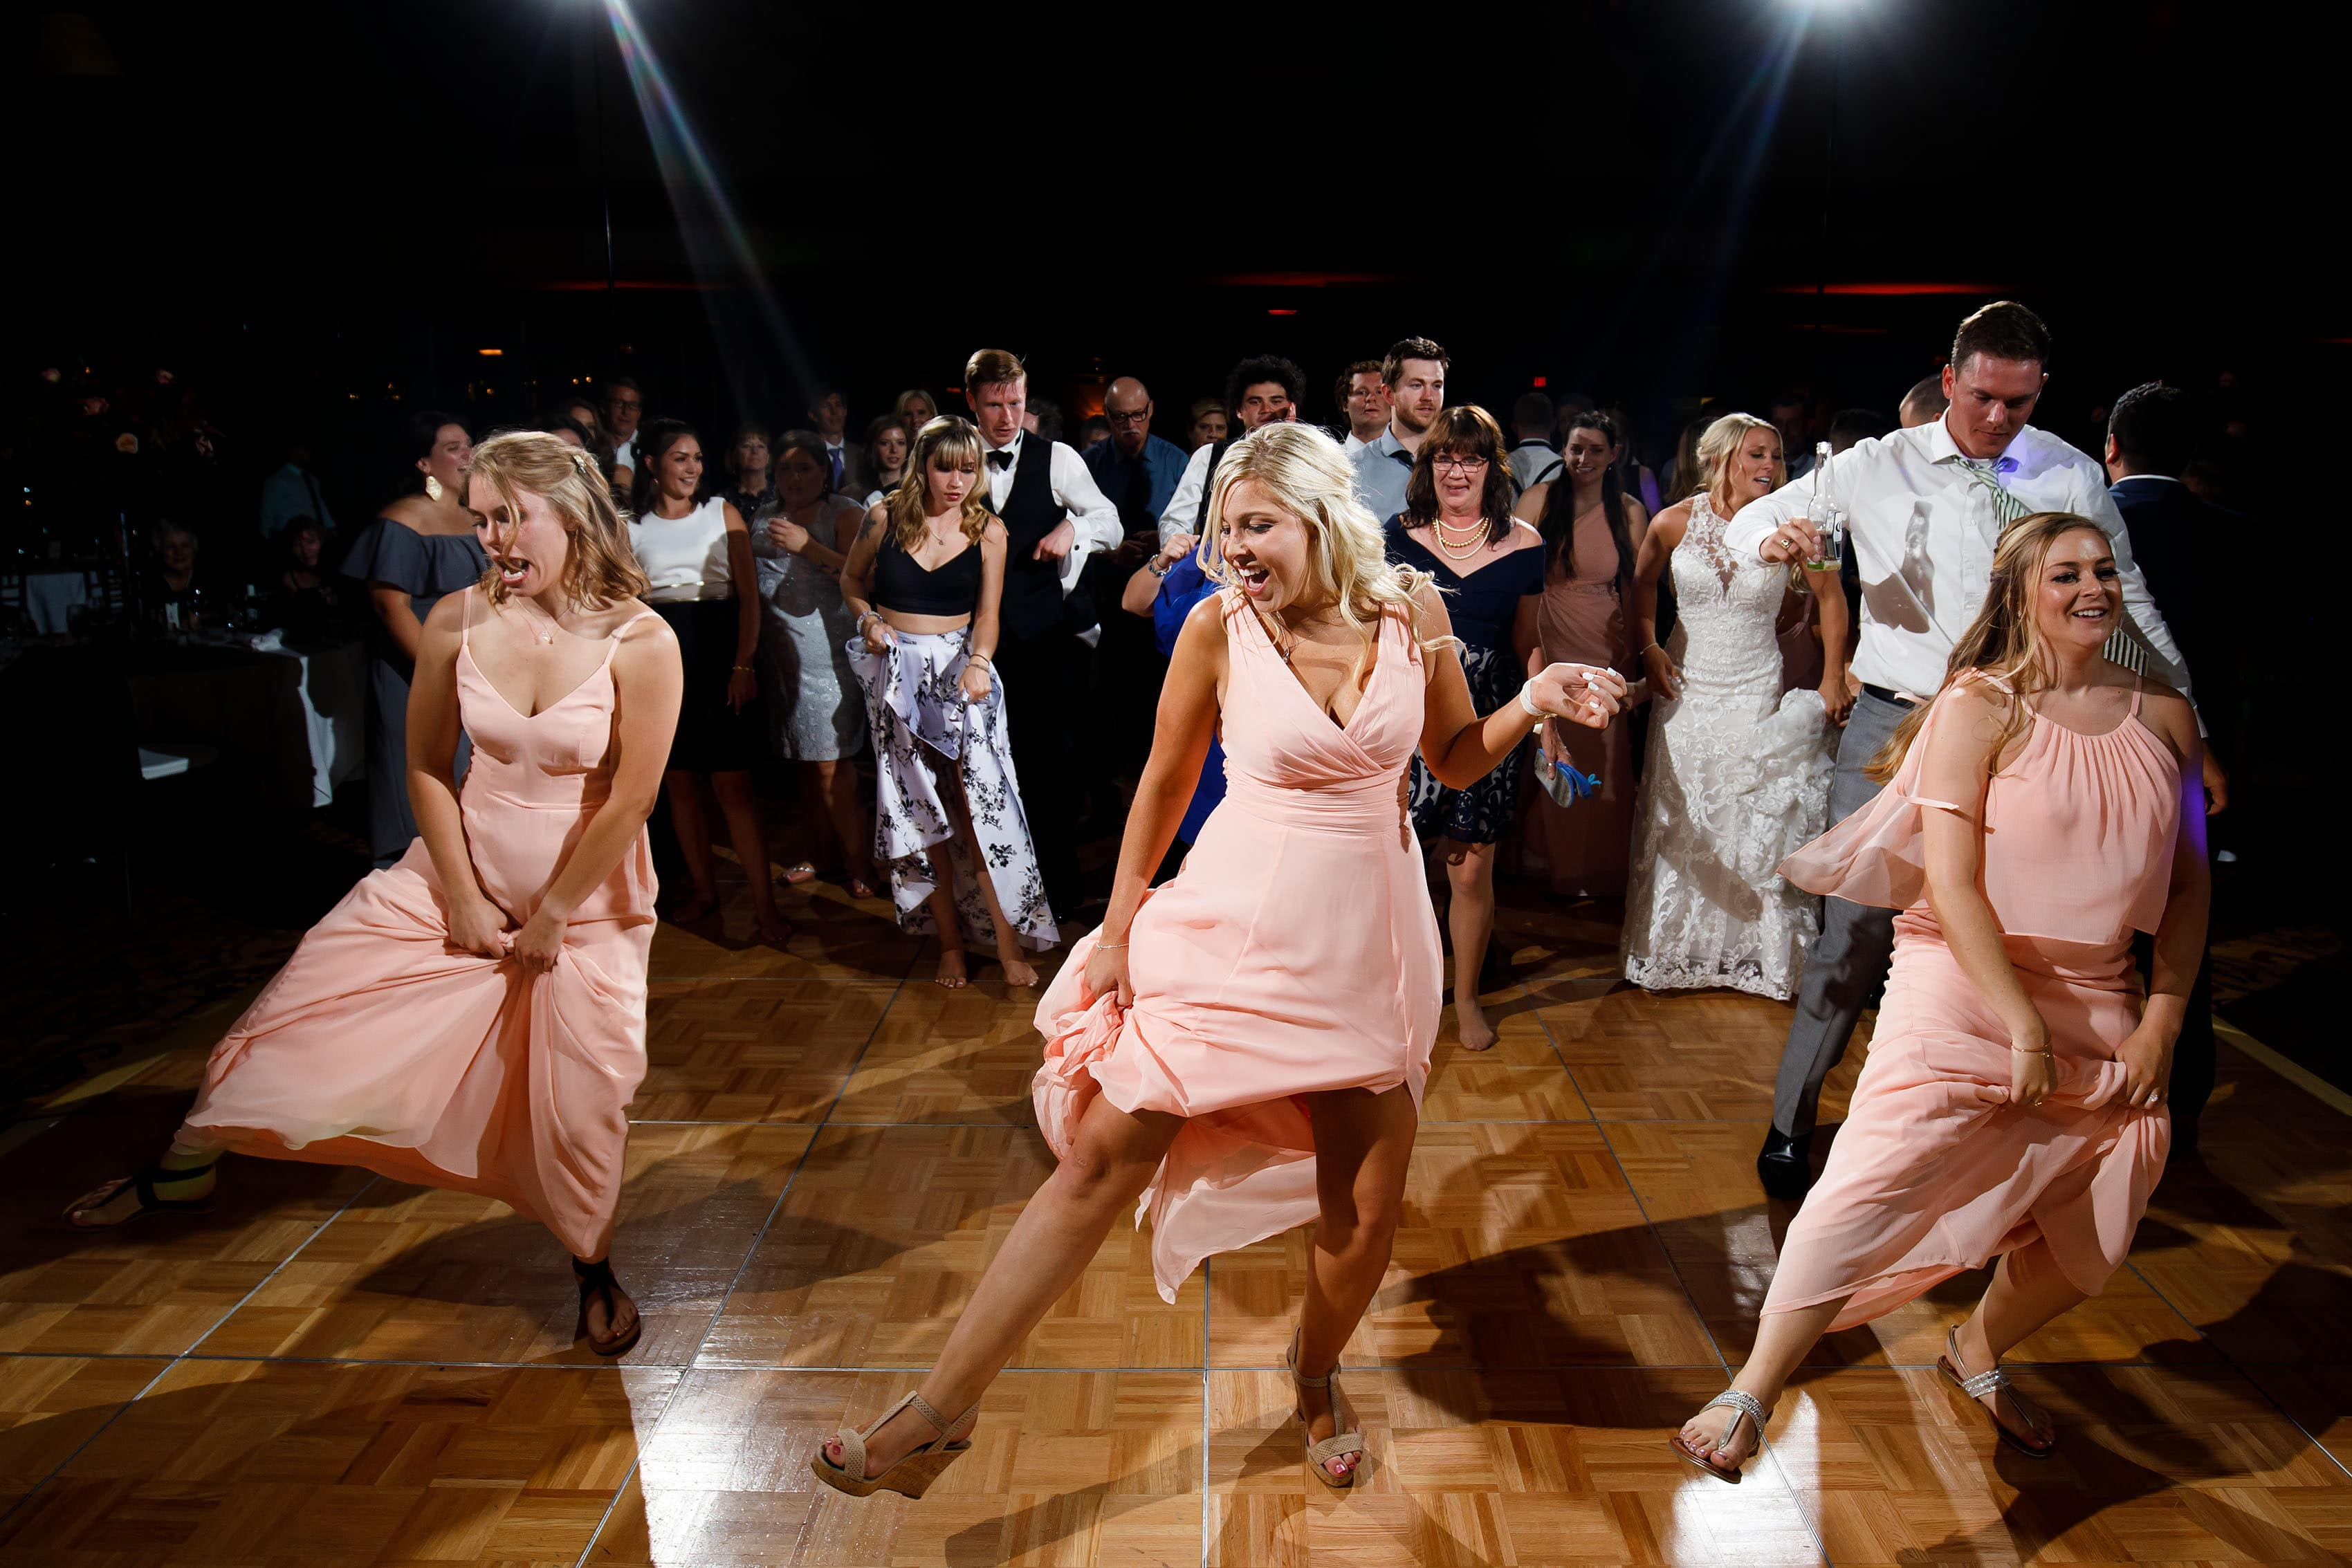 Bridesmaids lead a line dance during a wedding reception at Cheyenne Lodge